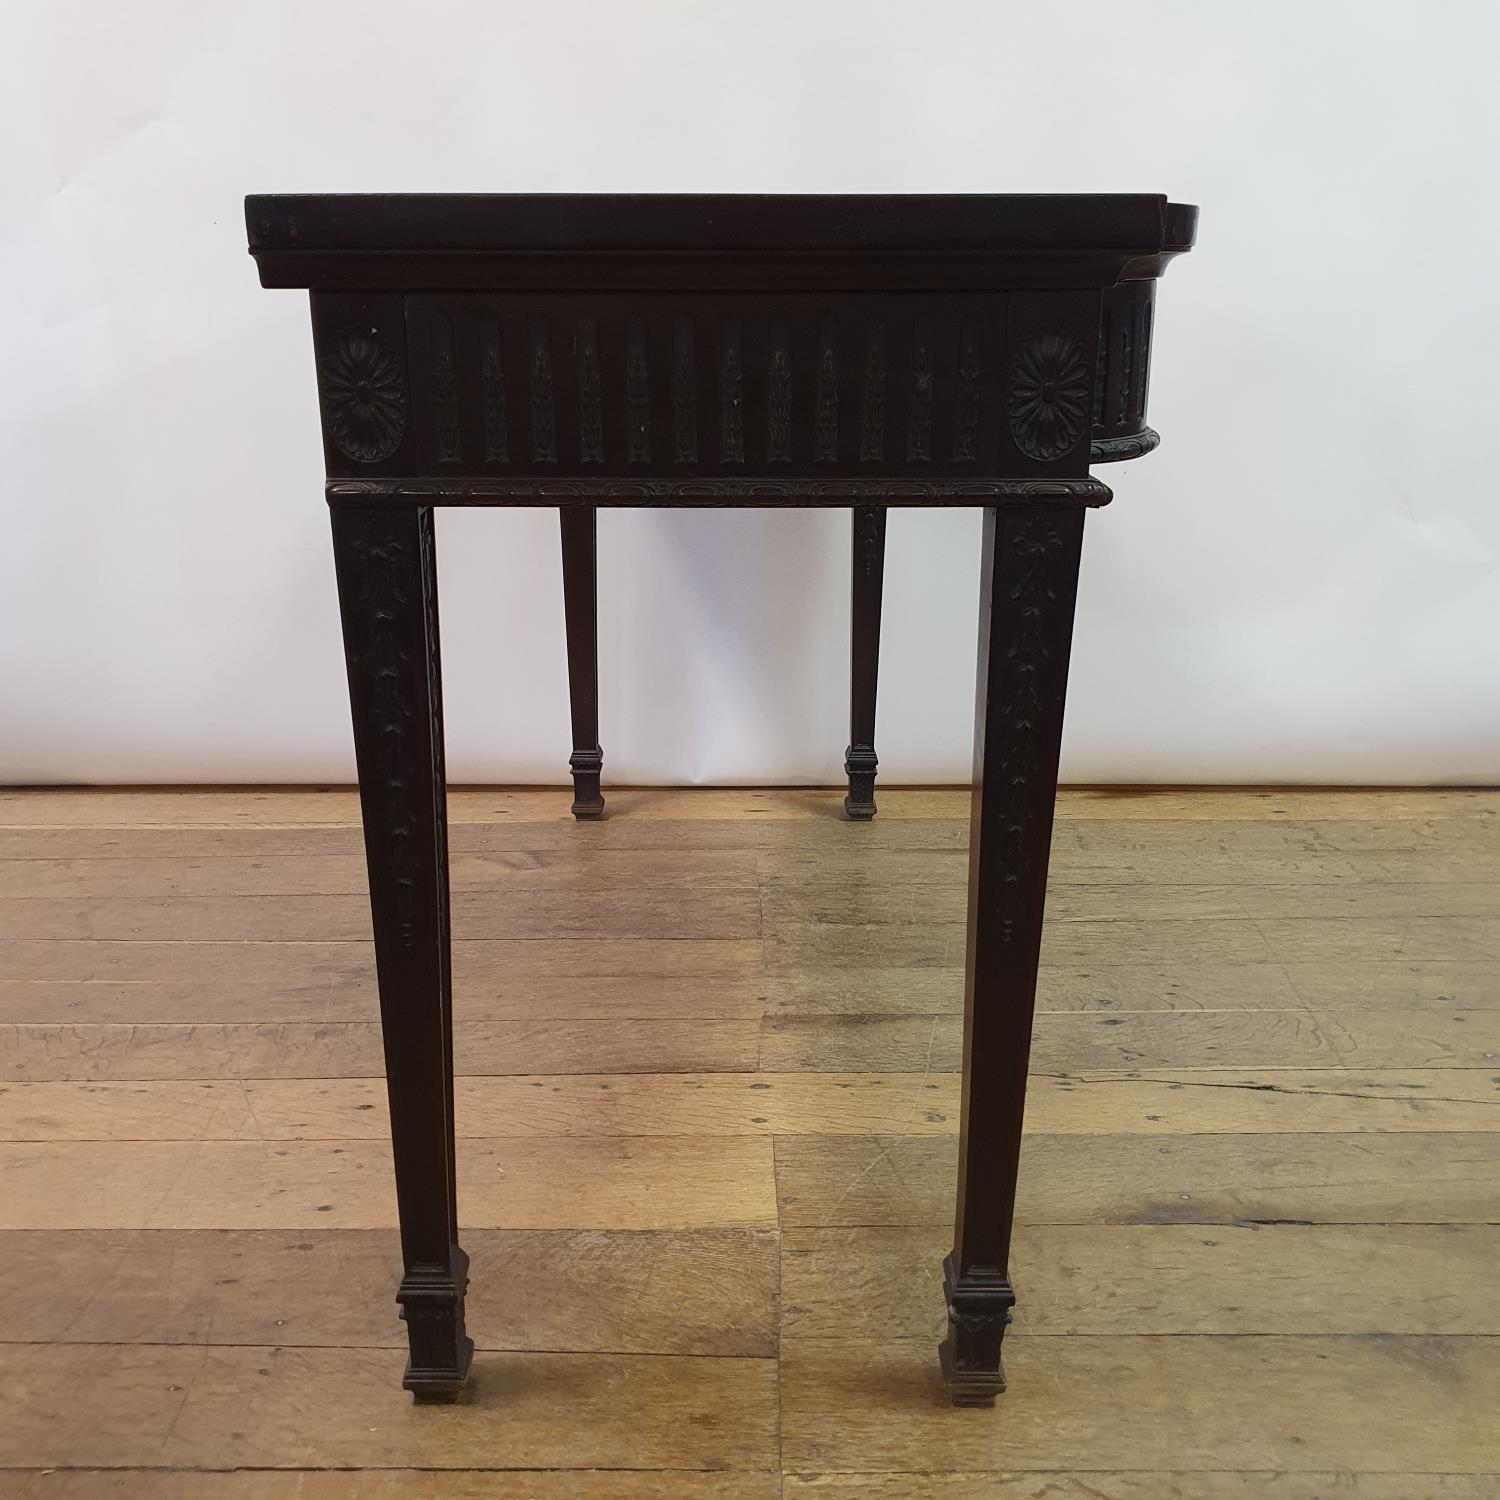 An early 20th century Adams revival mahogany side table, having a frieze drawer with carved rams - Image 4 of 7